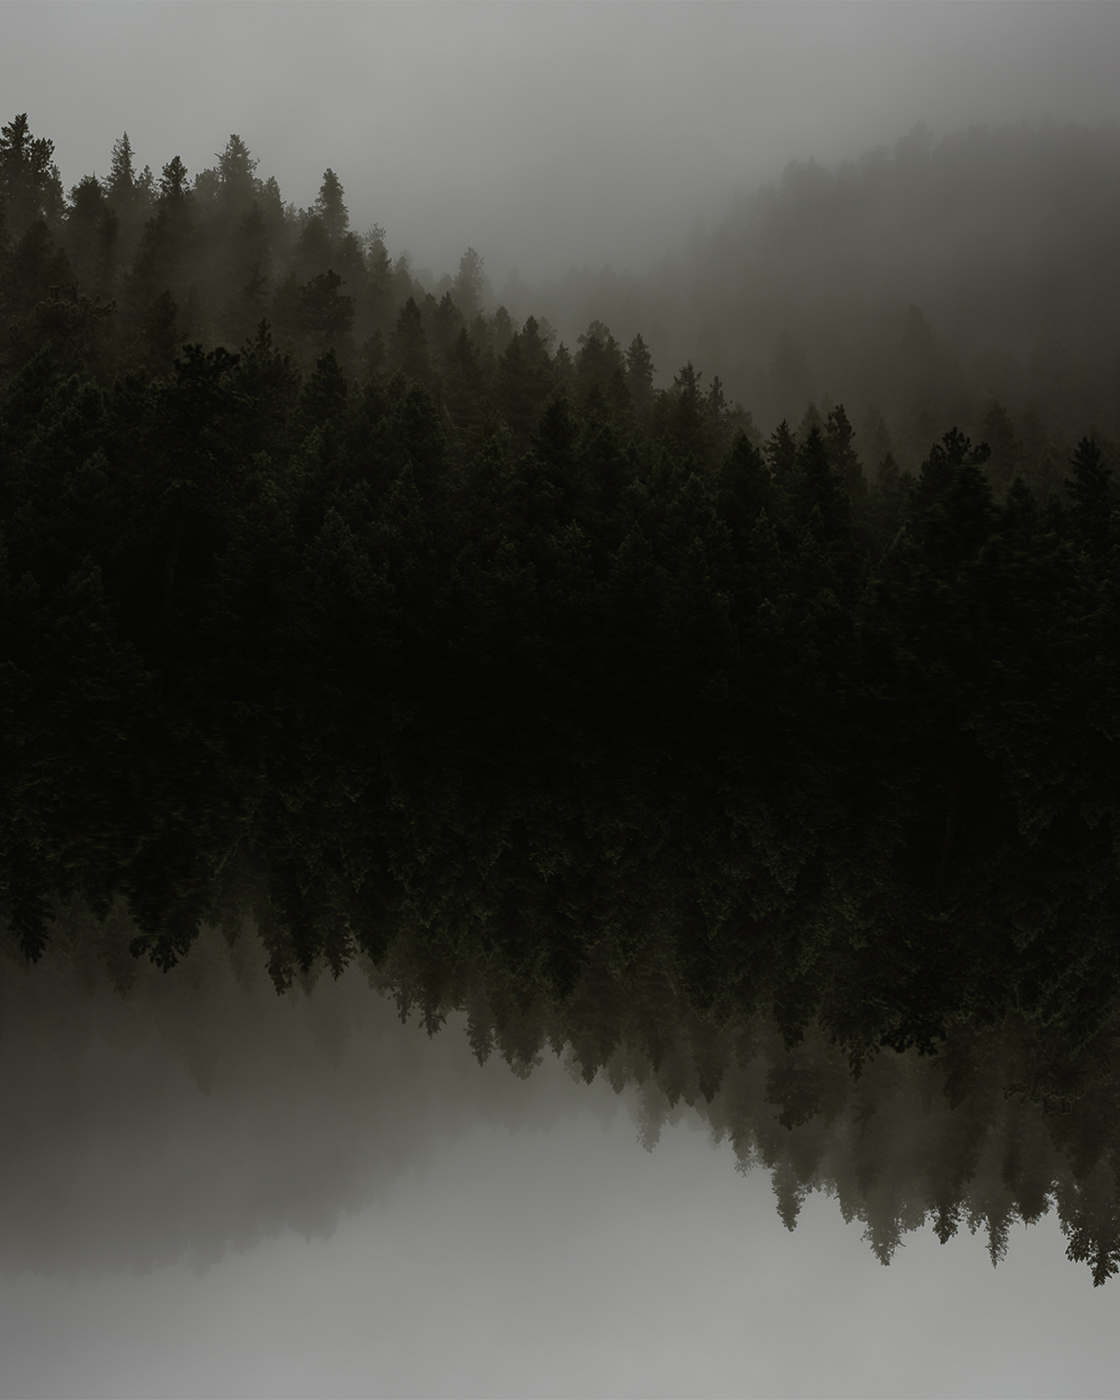 PHOCO Best of 2018 Photograph Fort Collins-48 Foggy Mountains Colorado Moody Reflection Photoshop.jpg